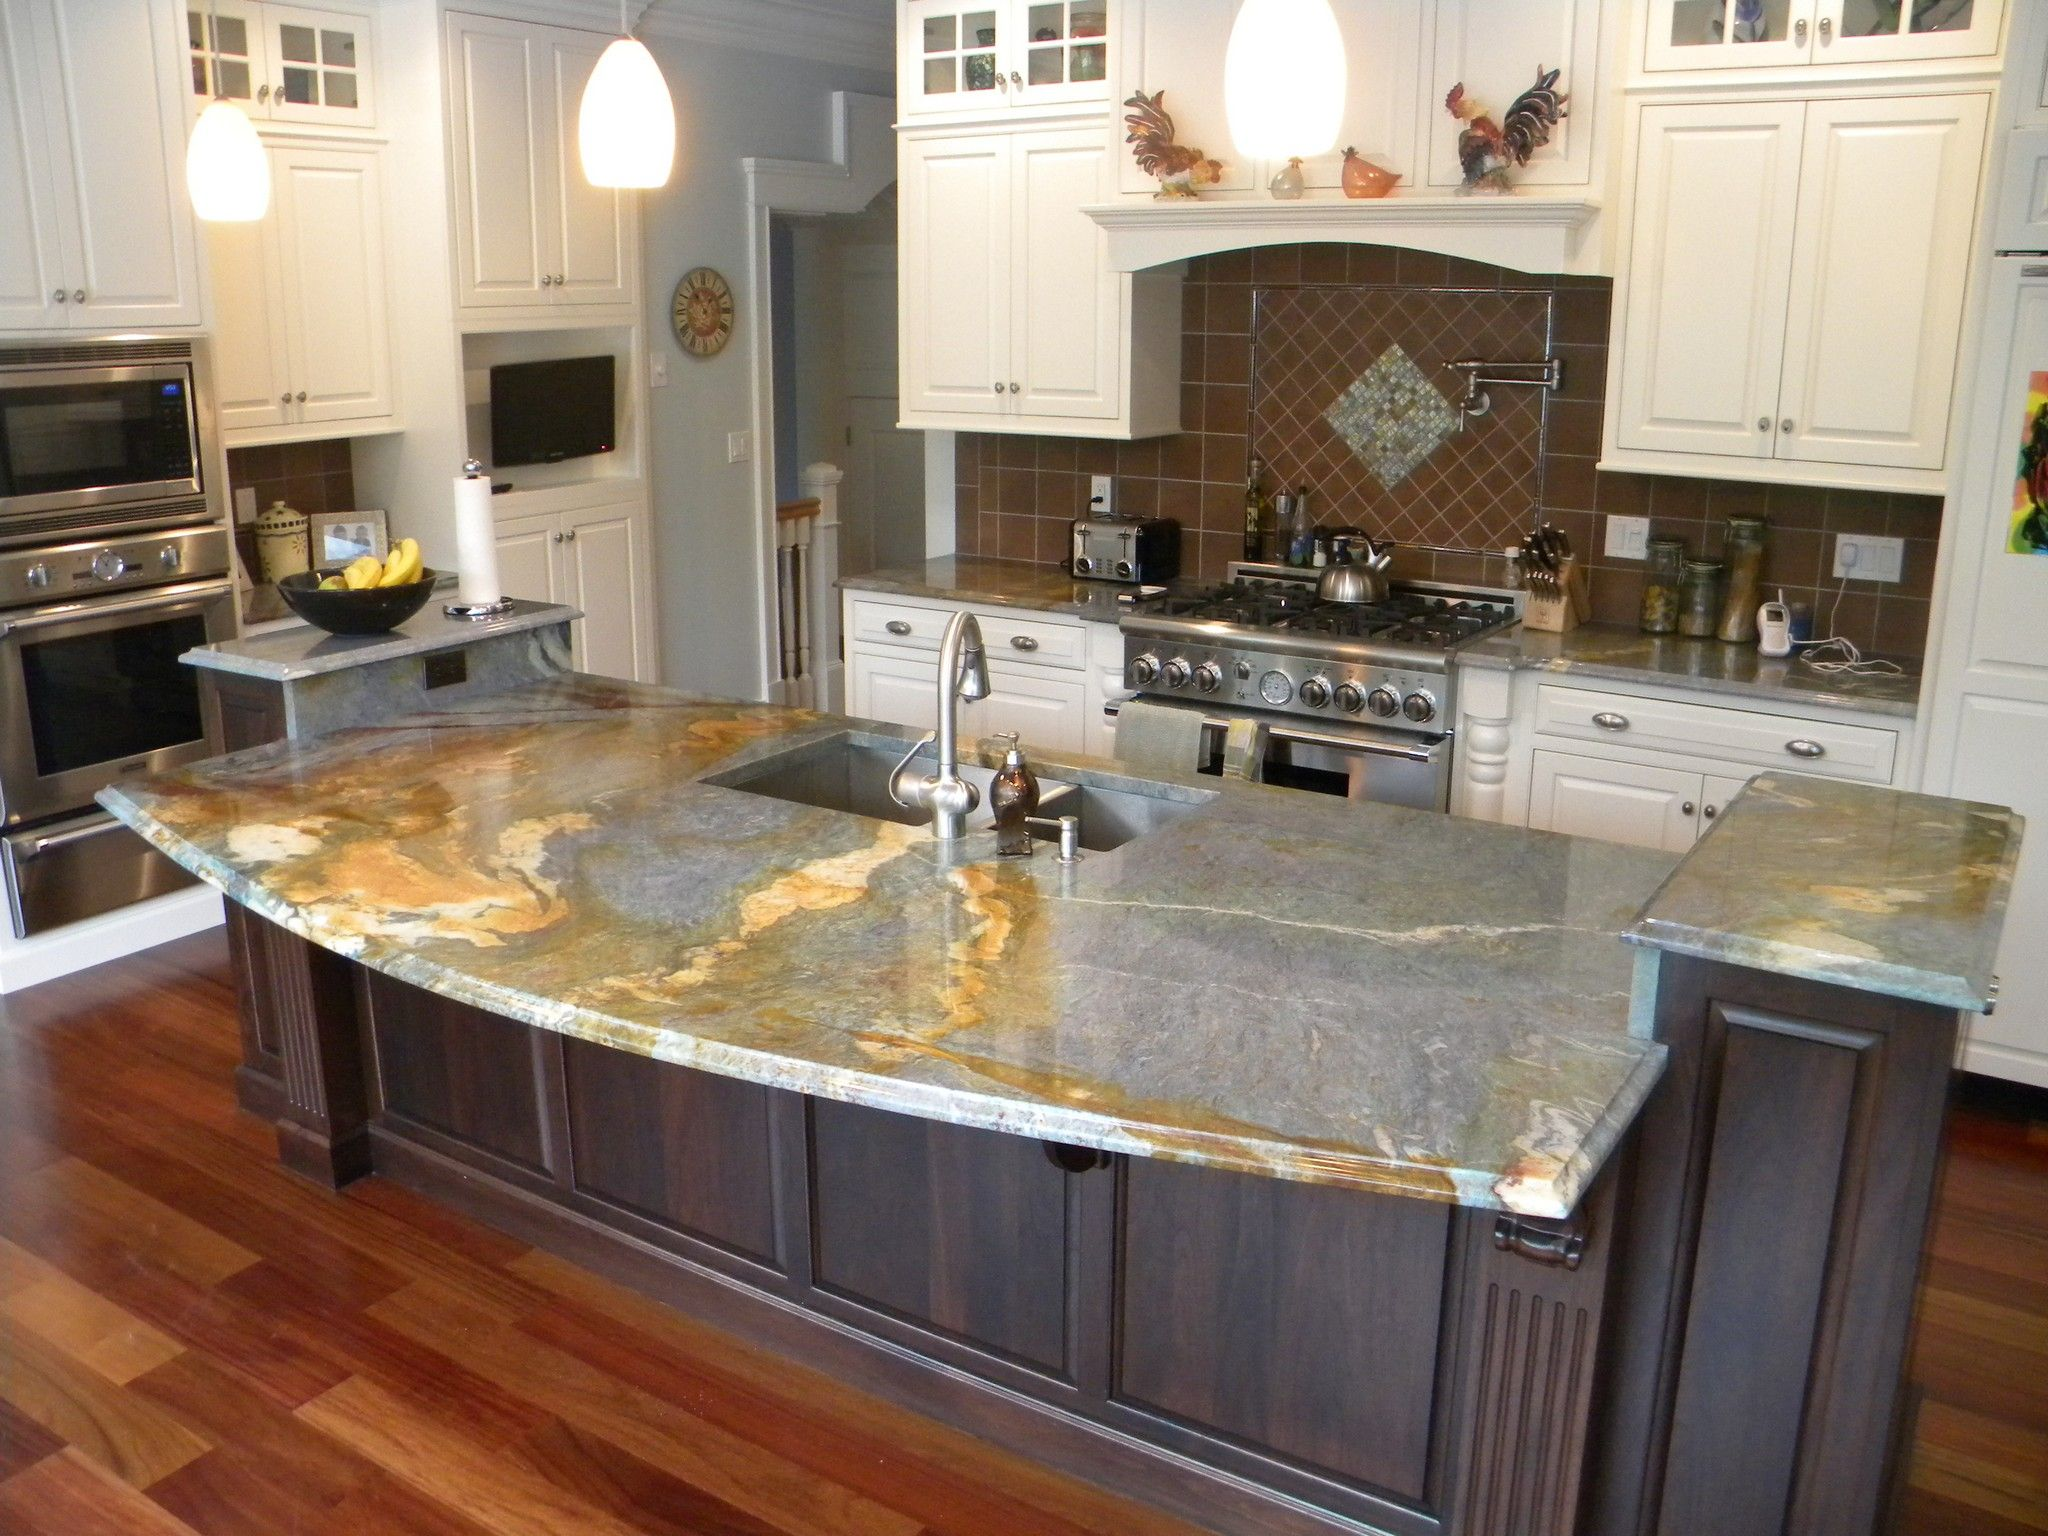 Granite Kitchens Waterfall Countertop Granite Countertops Marble Countertops